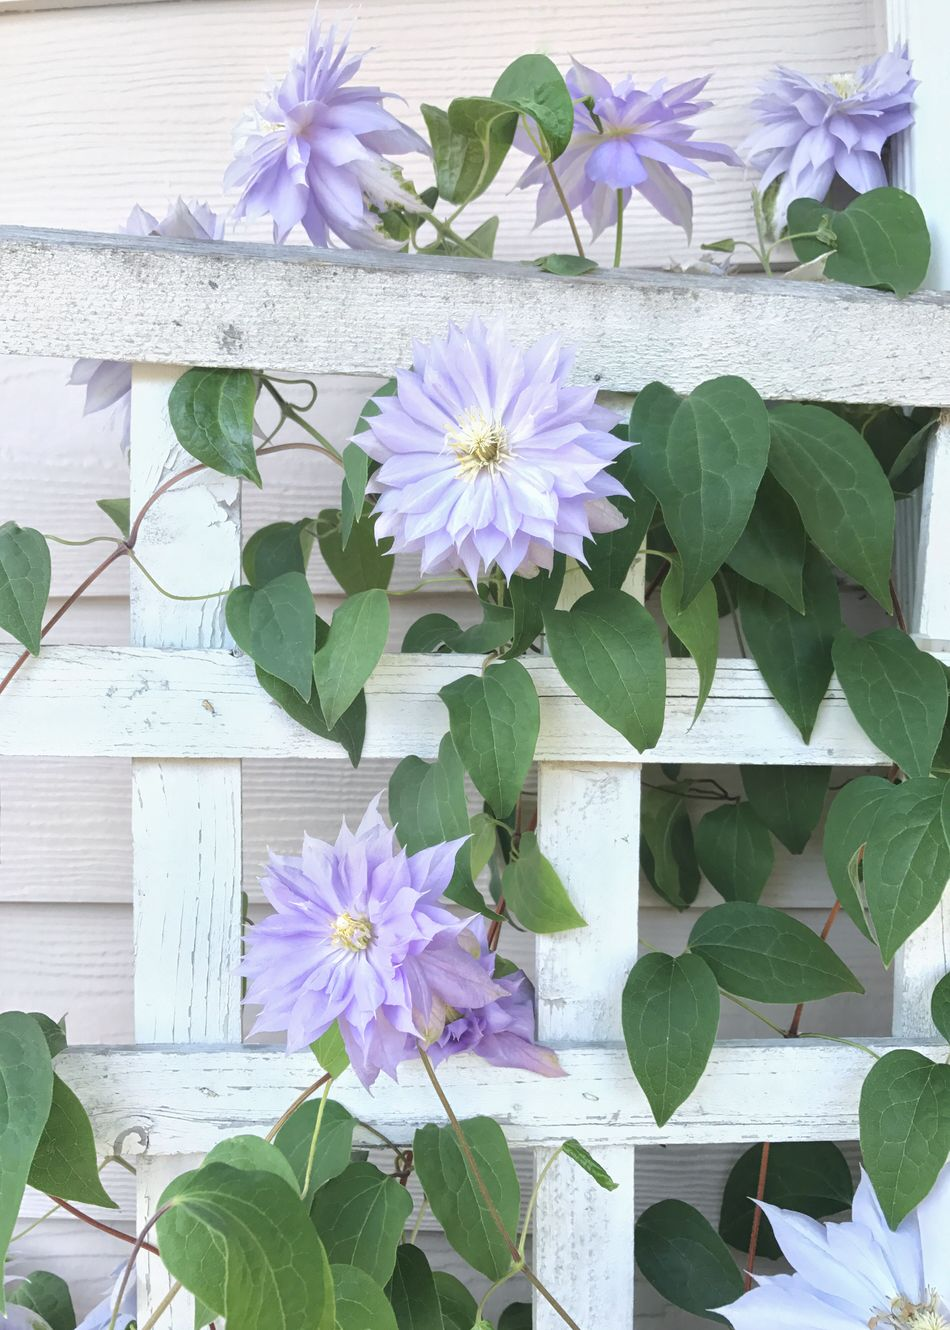 Purple clematis on a trellis. Clematis Flower Clematis Trellis Flower Petal Bright White Flower Head Purple No People Verticle Leaf Growth Plant